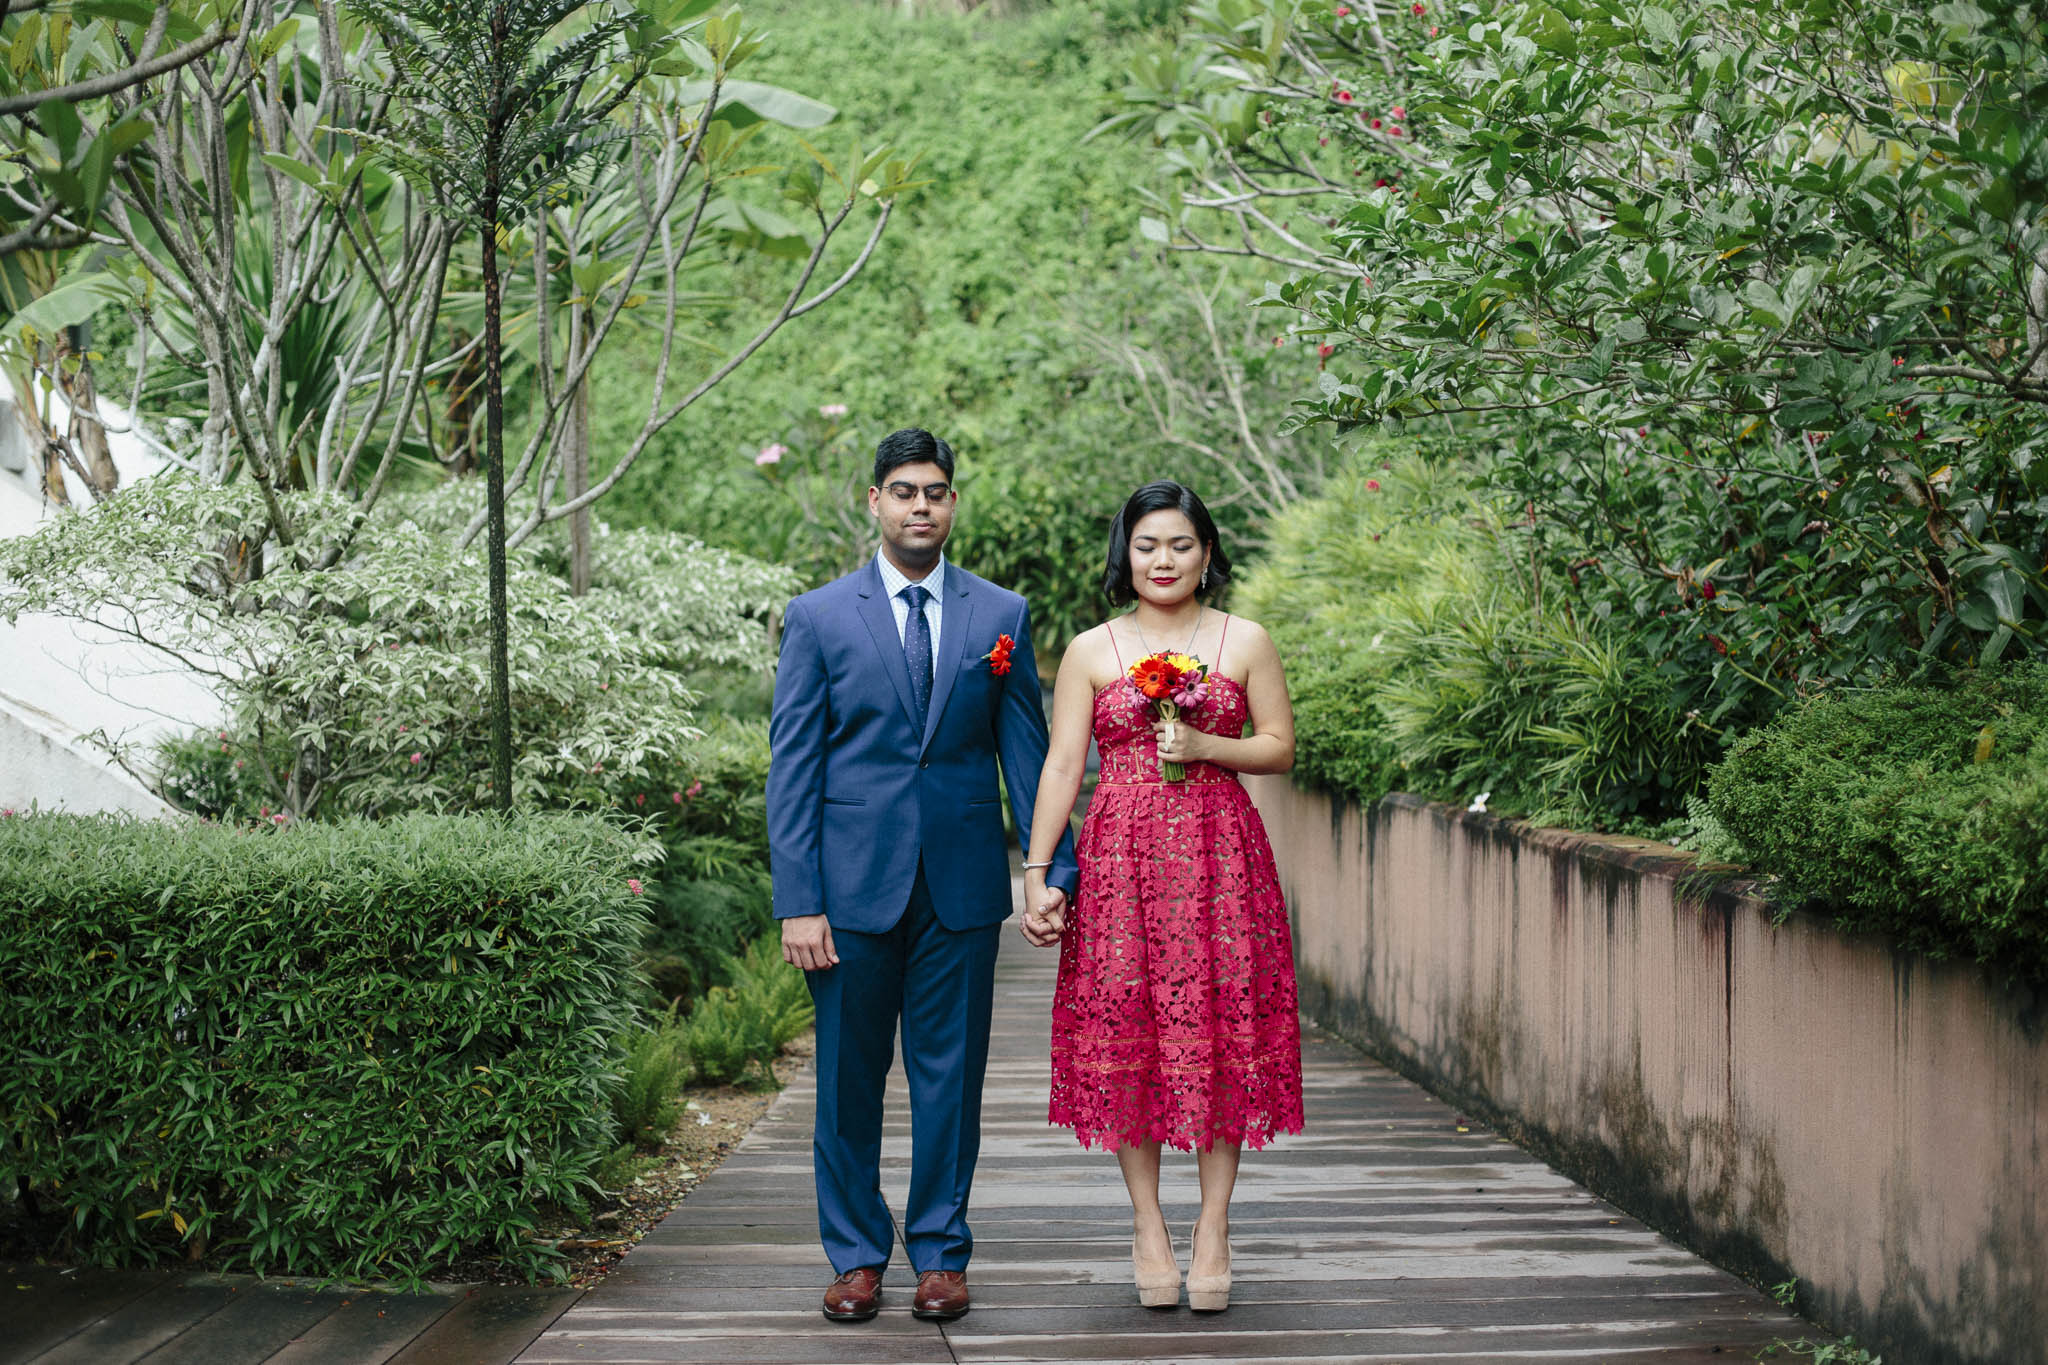 singapore-wedding-photographer-we-made-these-2016-selects-010.jpg